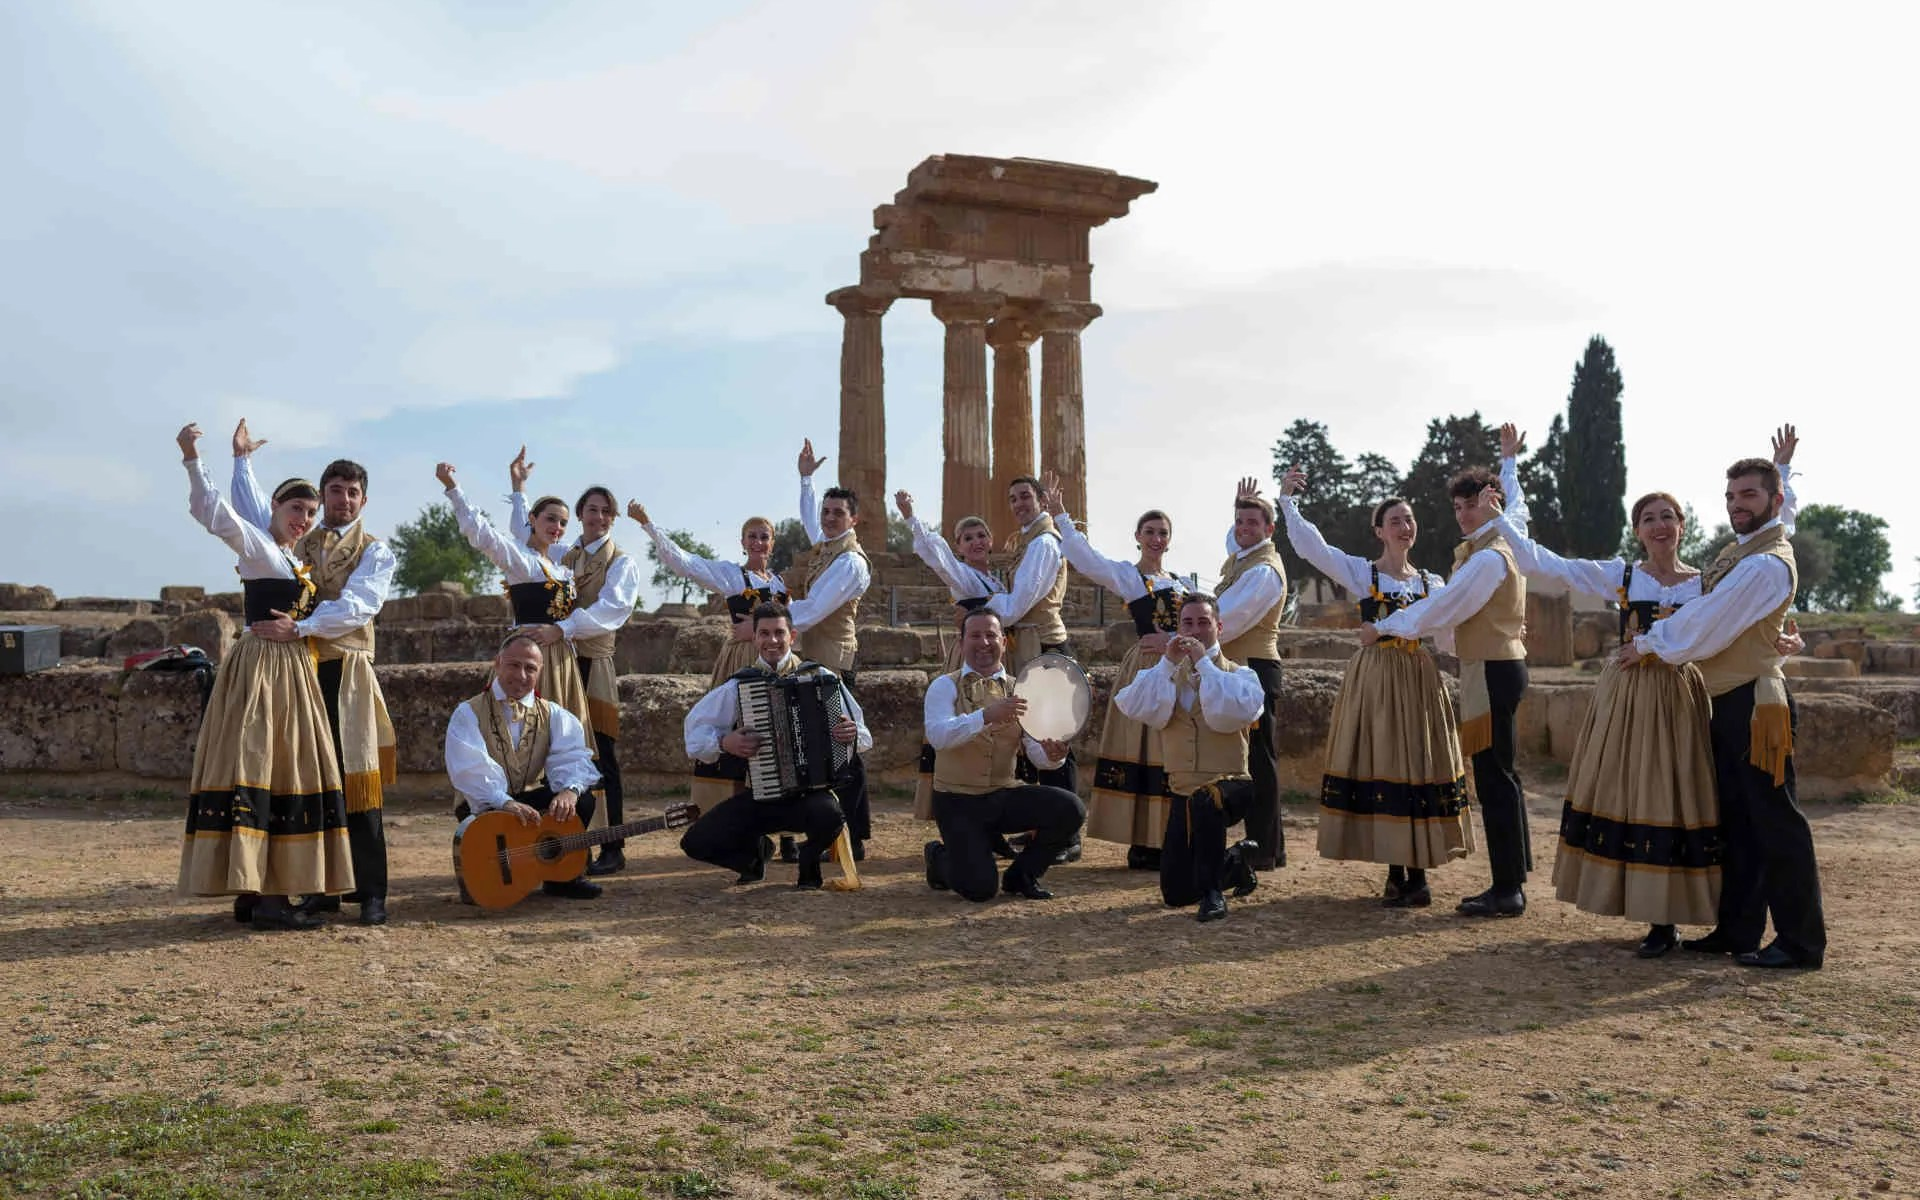 gruppo val d'akragas in costume tipico siciliano